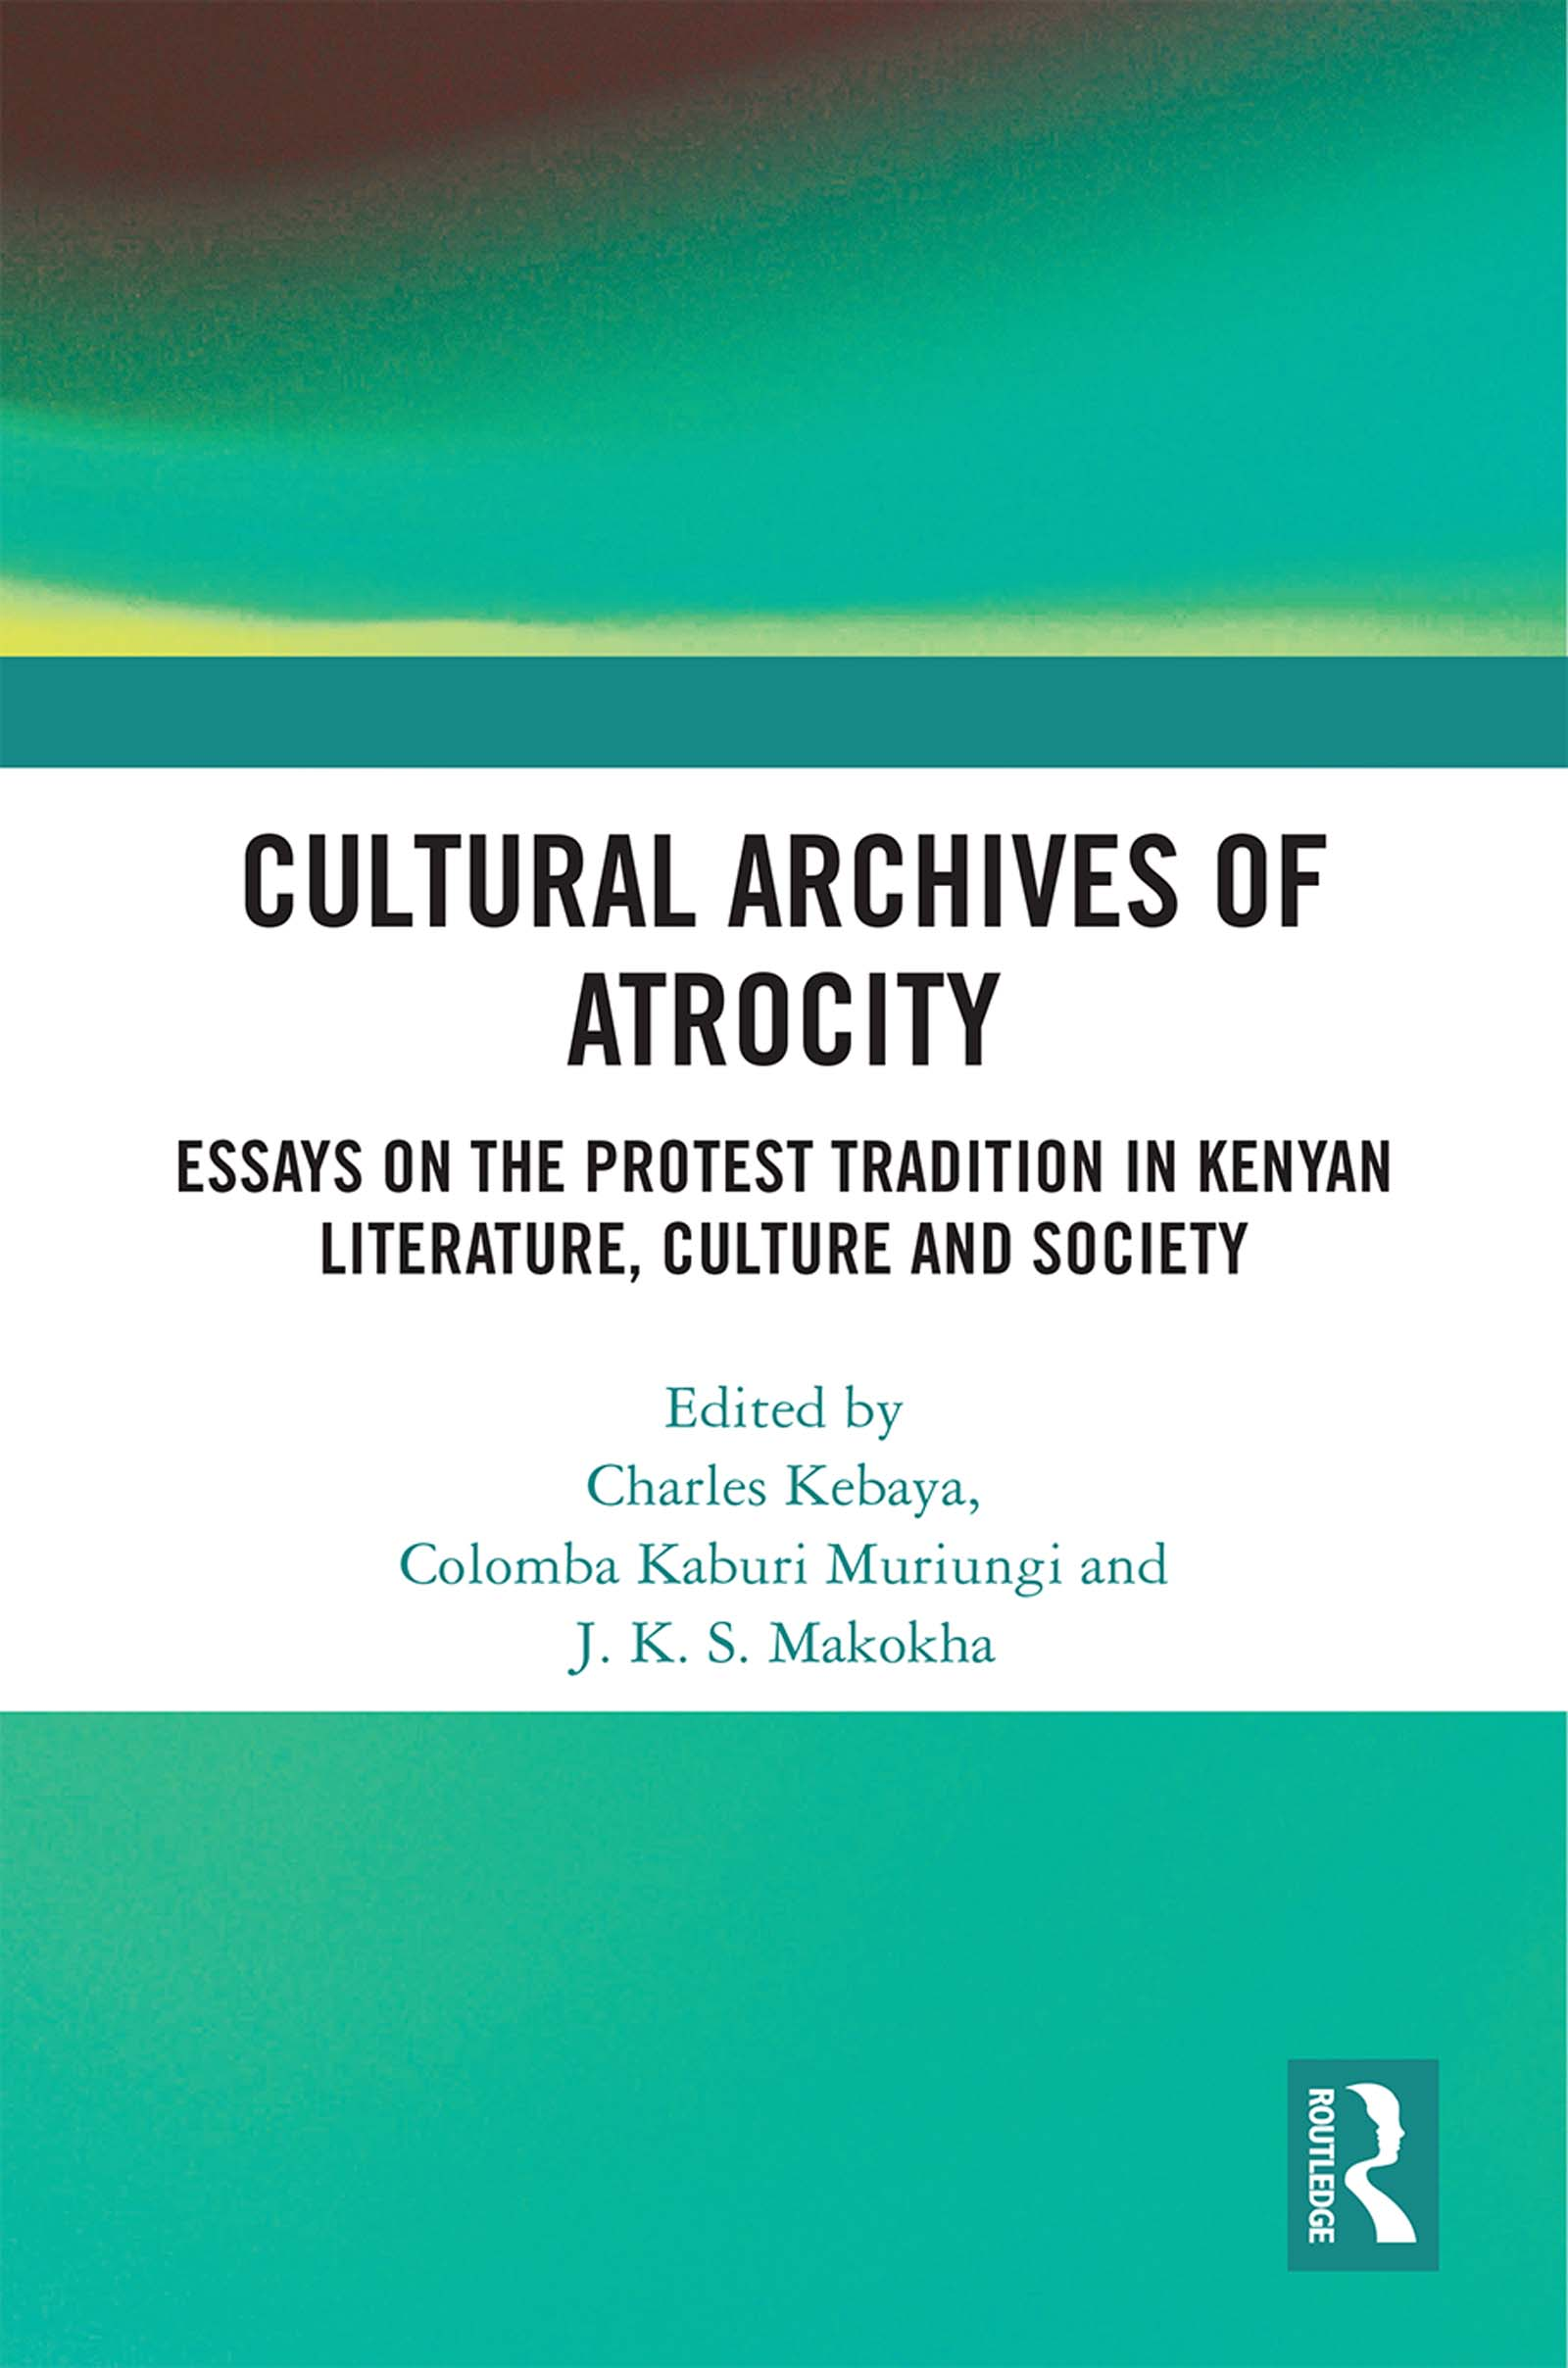 Cultural Archives of Atrocity: Essays on the Protest Tradition in Kenyan Literature, Culture and Society, 1st Edition (Hardback) book cover